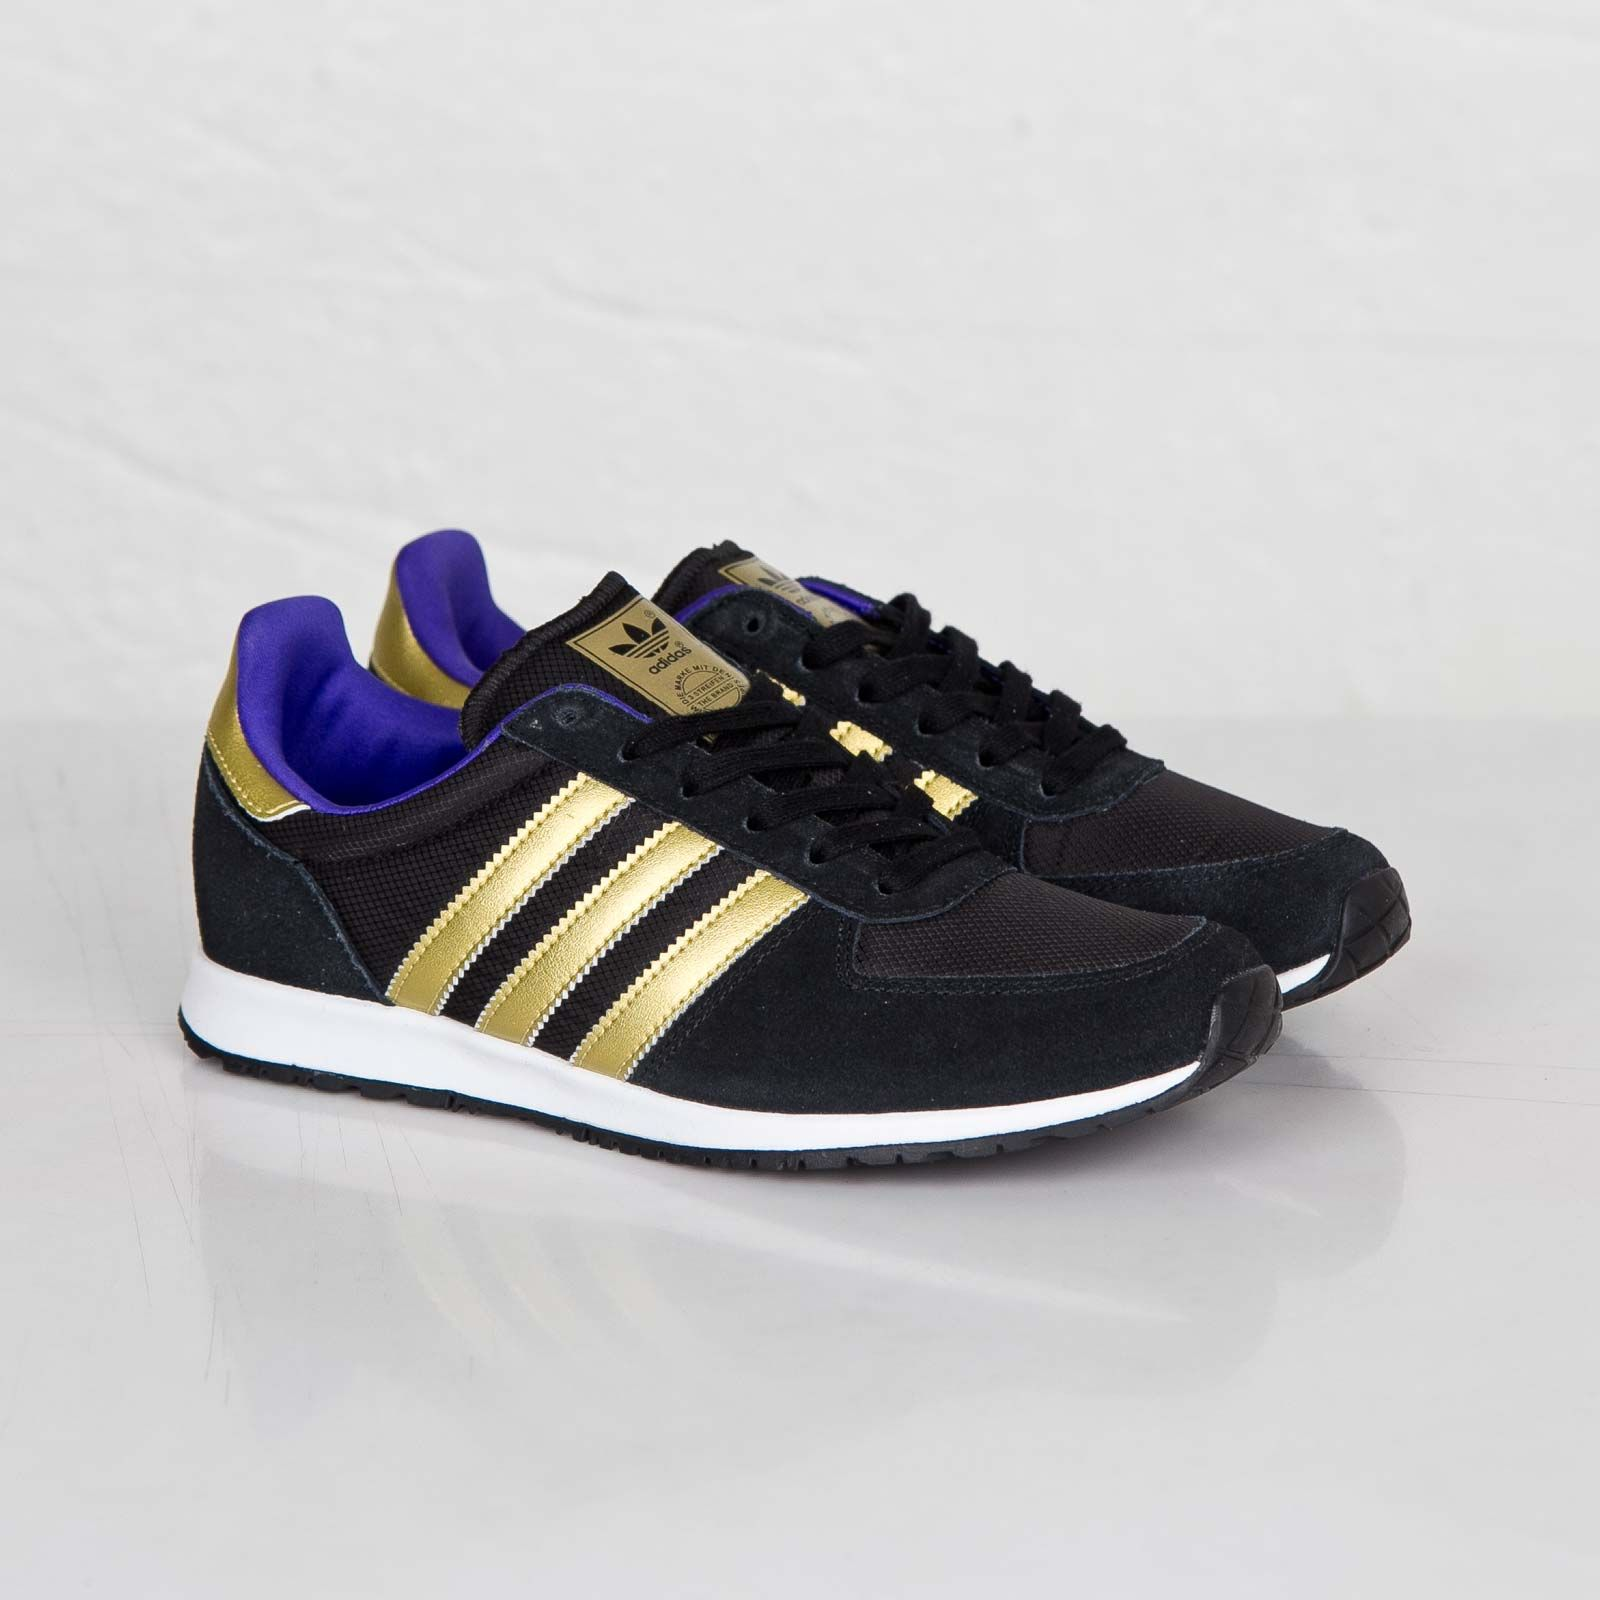 brand new 38d71 444ee Adidas LA Trainer  Grey  Article code D65662  Т О - W E A R - F O R - M  E  Pinterest  Adidas, Trainers and Style